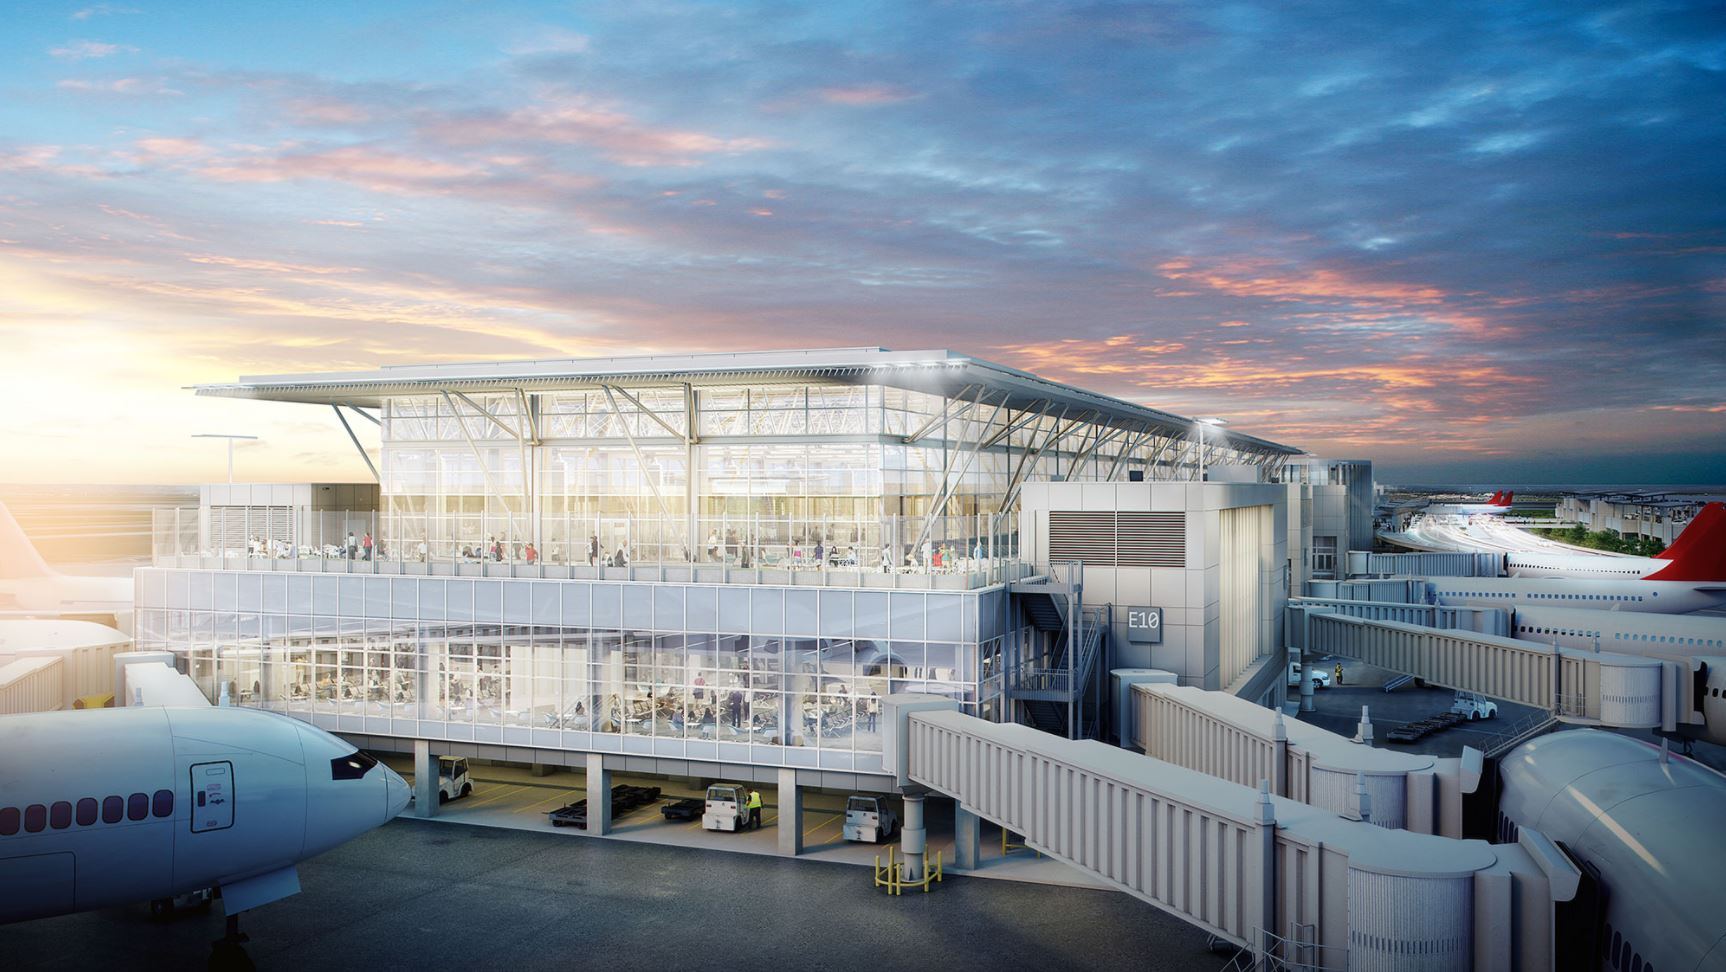 Austin-Bergstrom International Airport Expansion, Texas